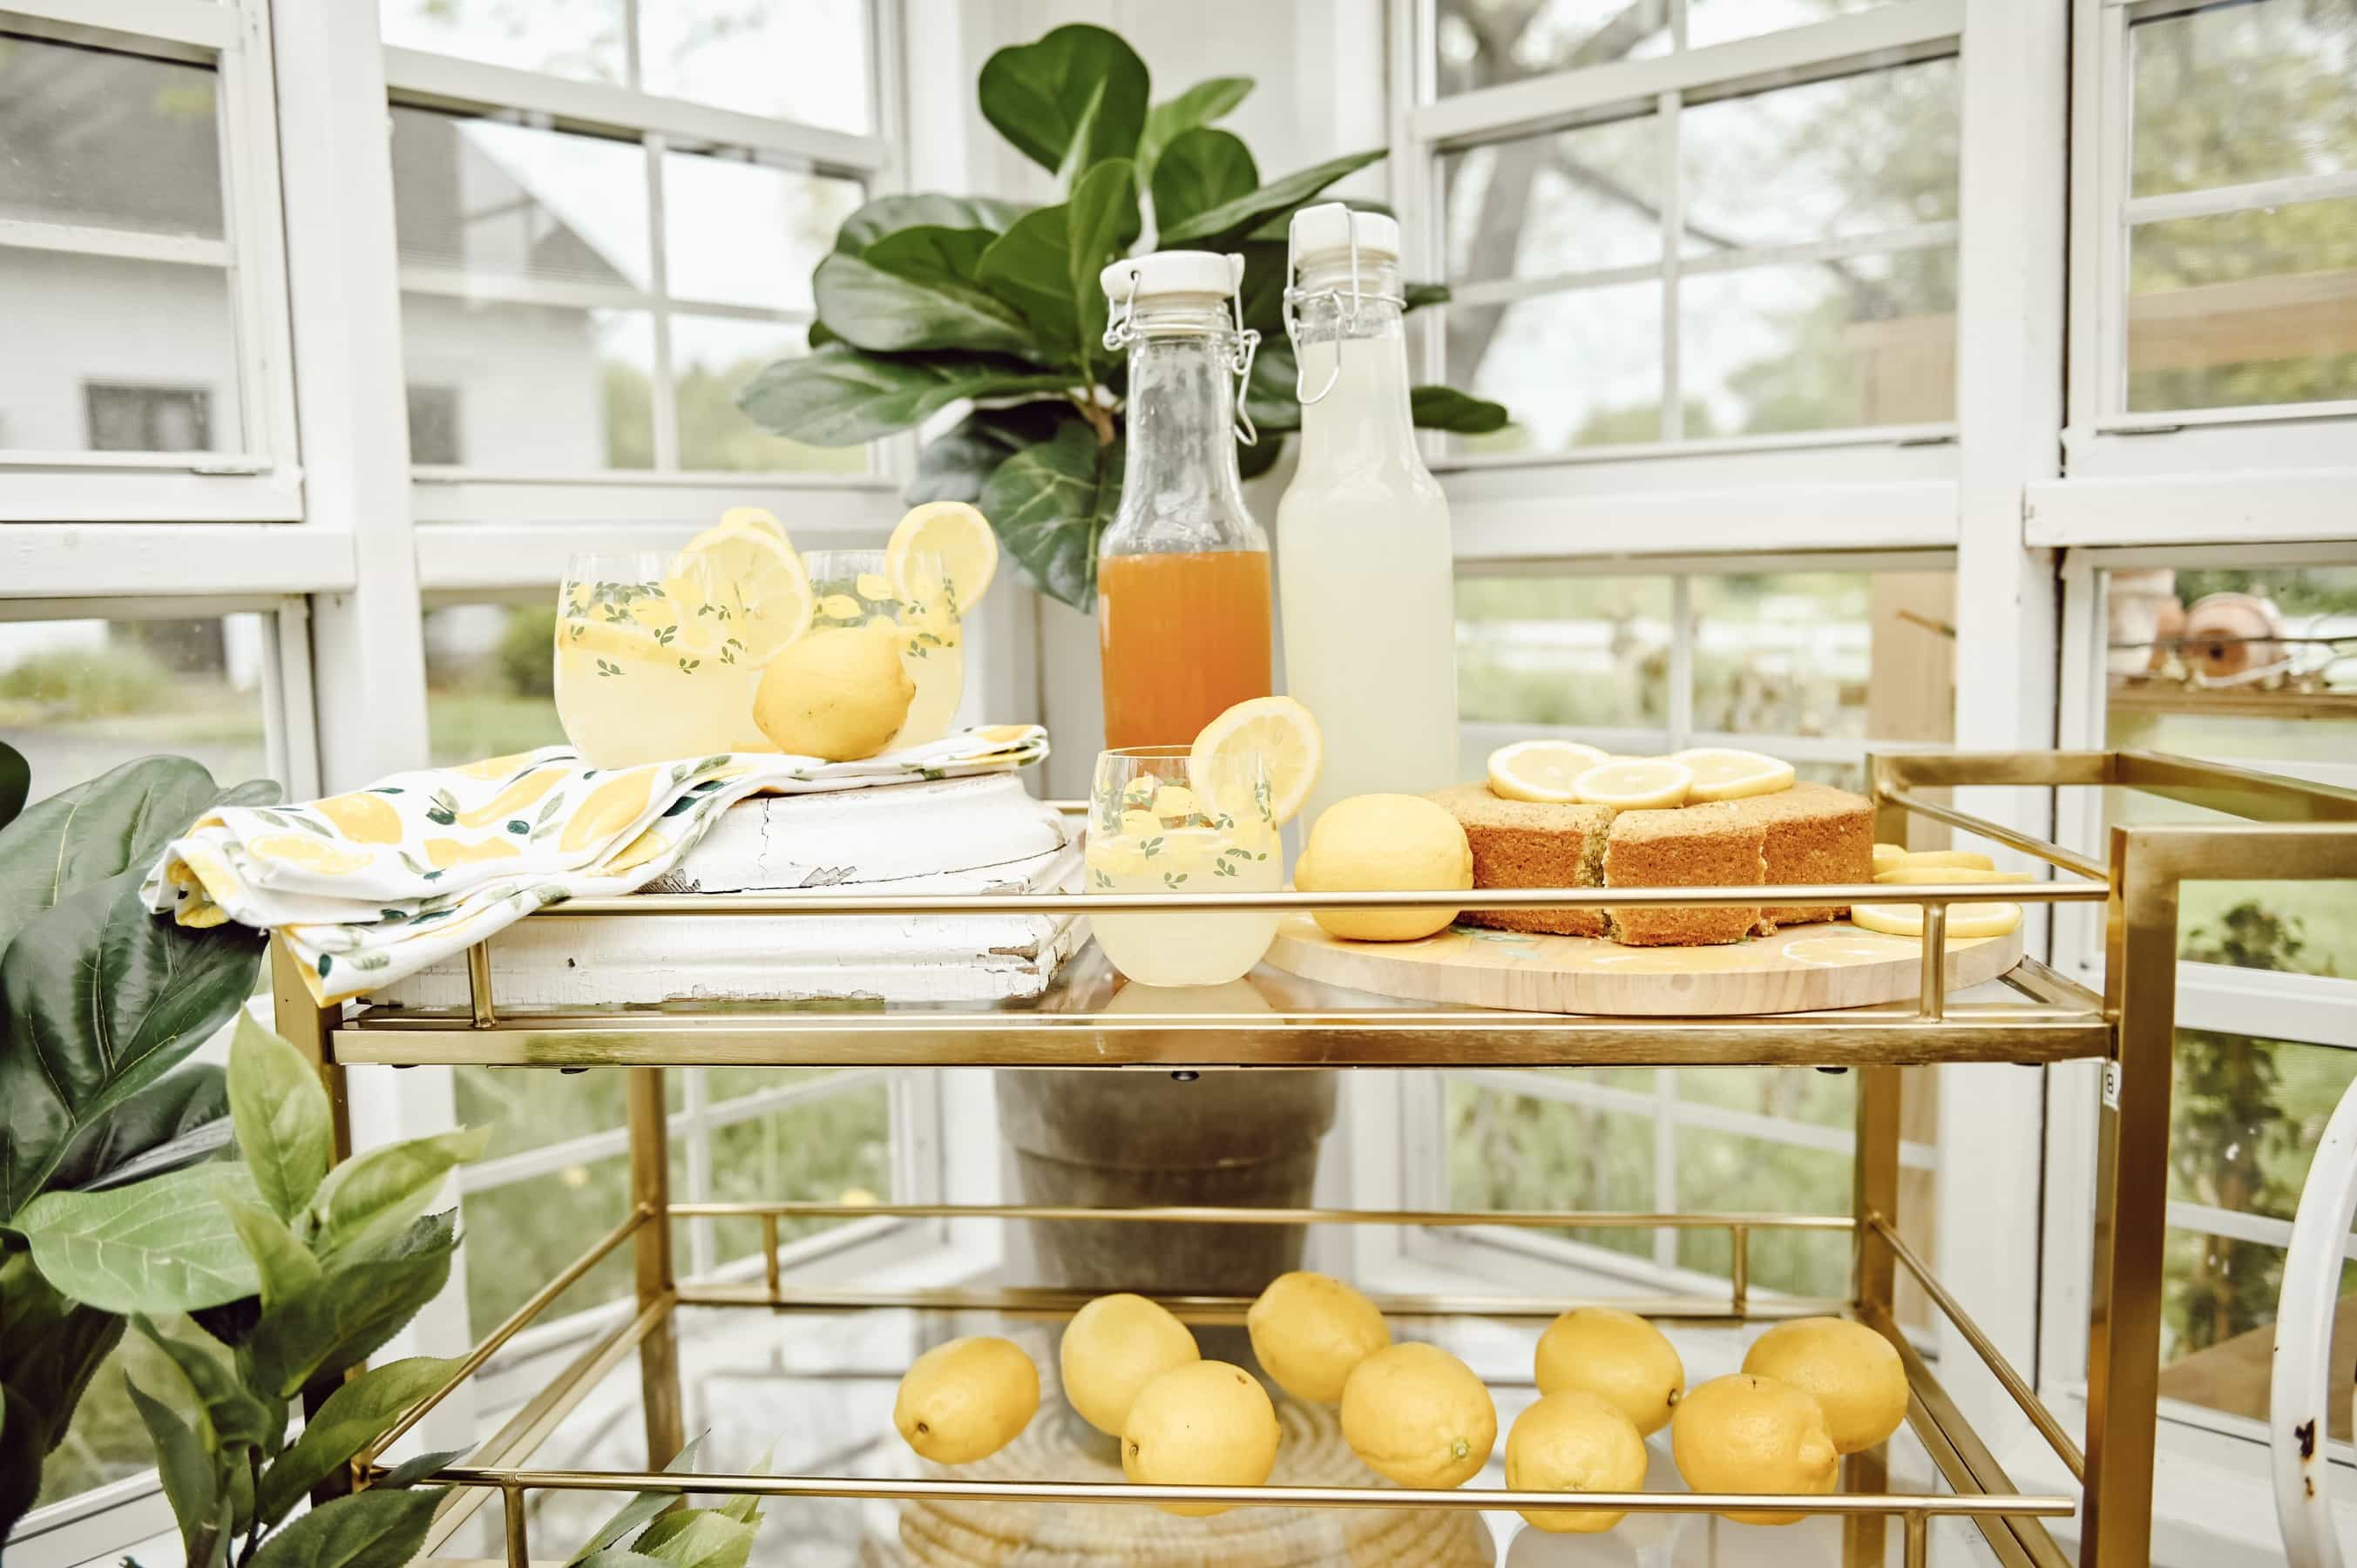 A Lemon Party In The Greenhouse